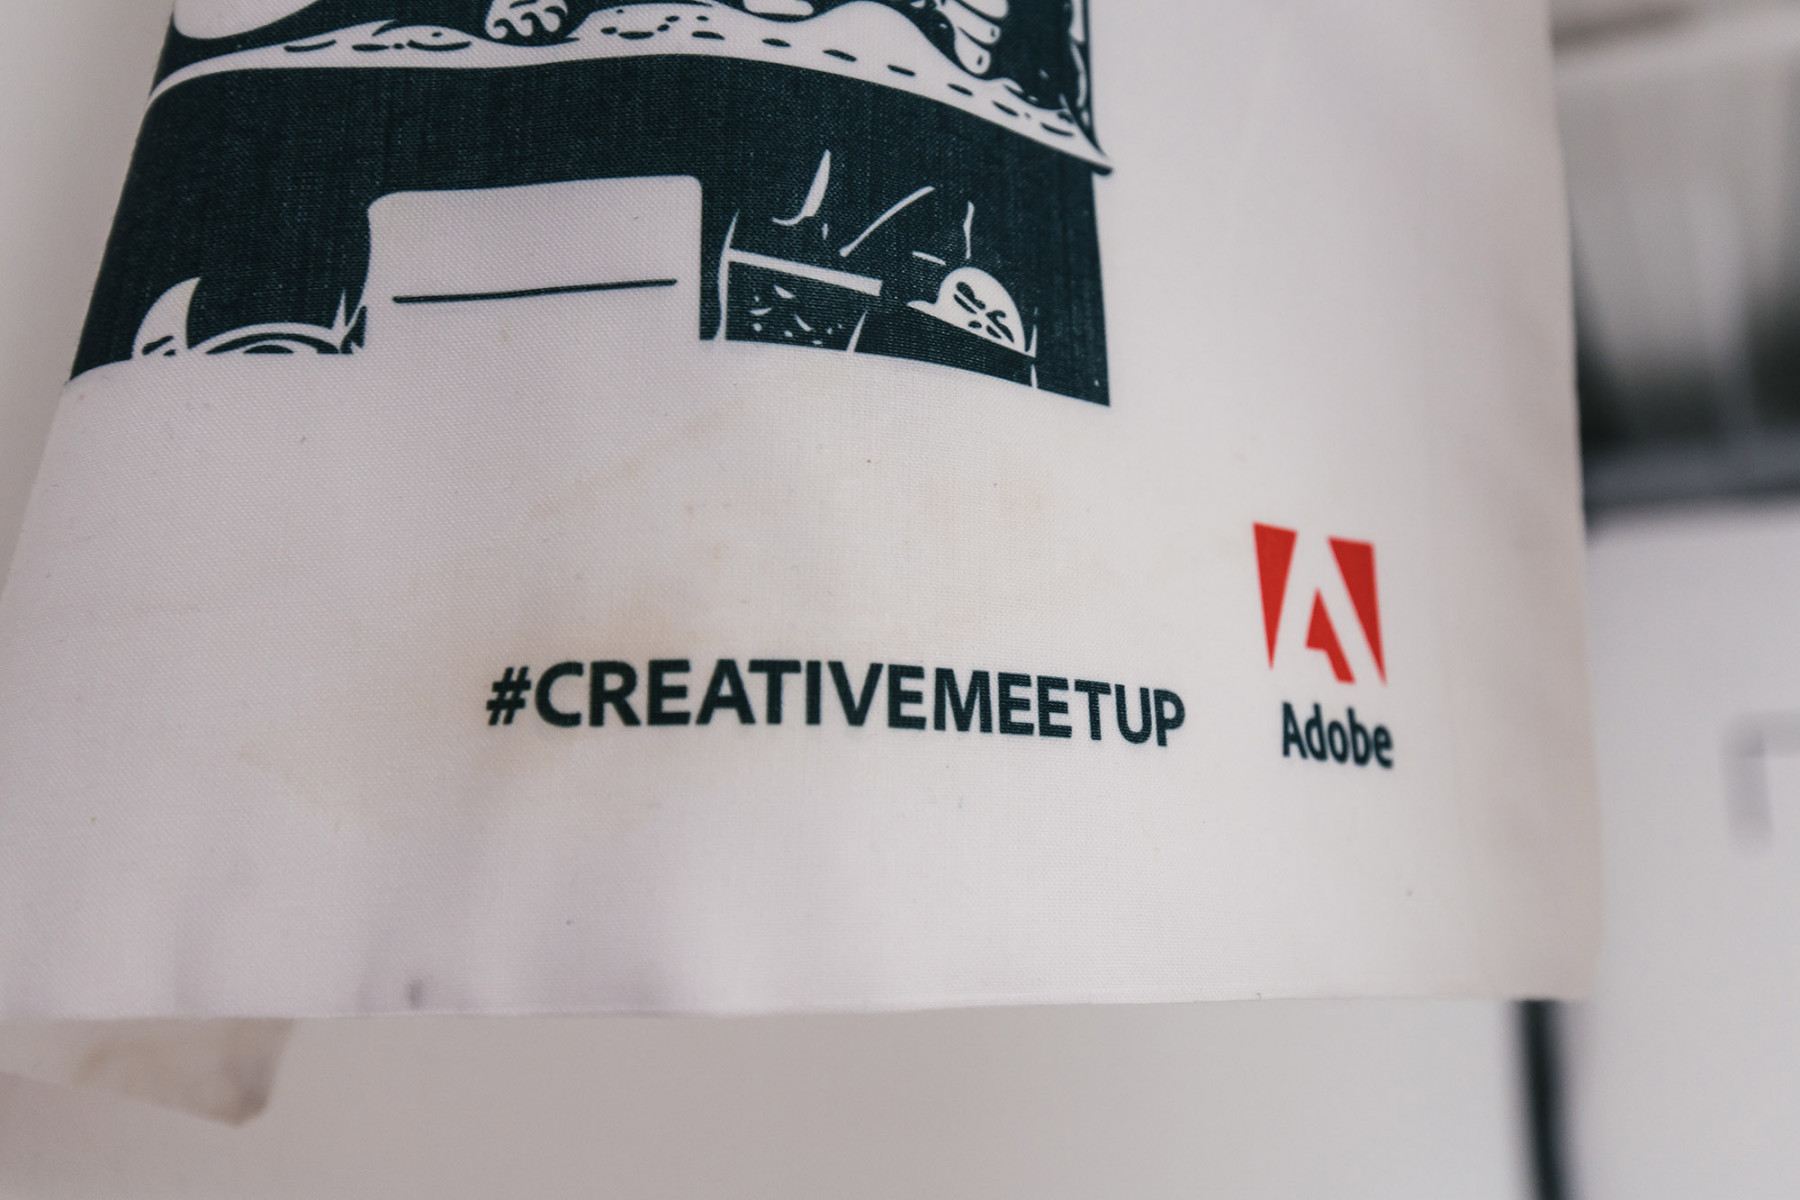 Adobe Creative Cloud Event Printed Bags